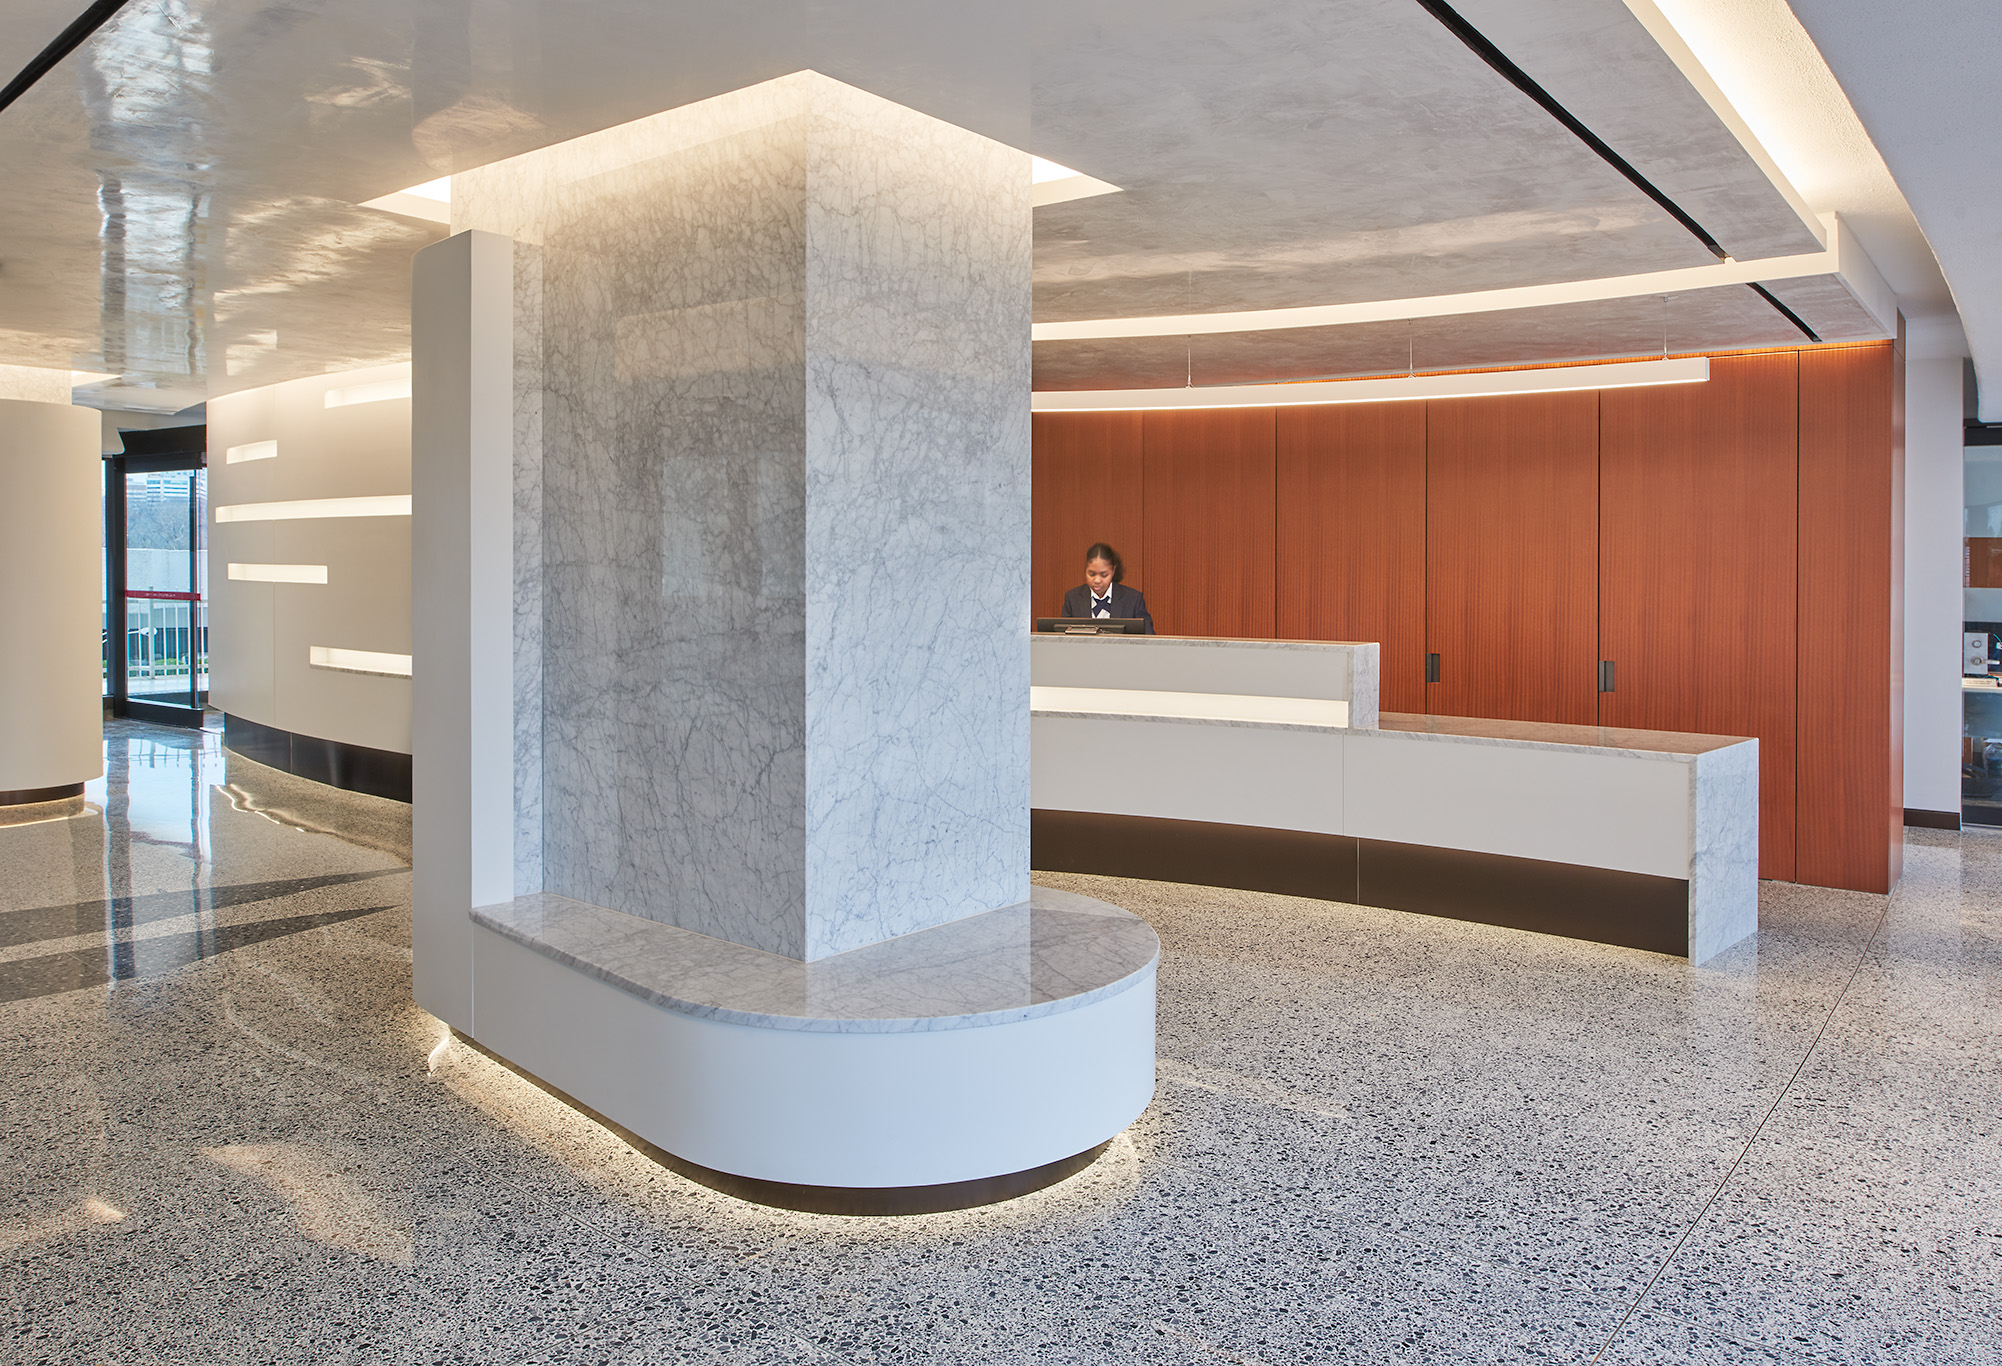 Watergate_Lobby_McInturff_Architects_4_Anice.jpg